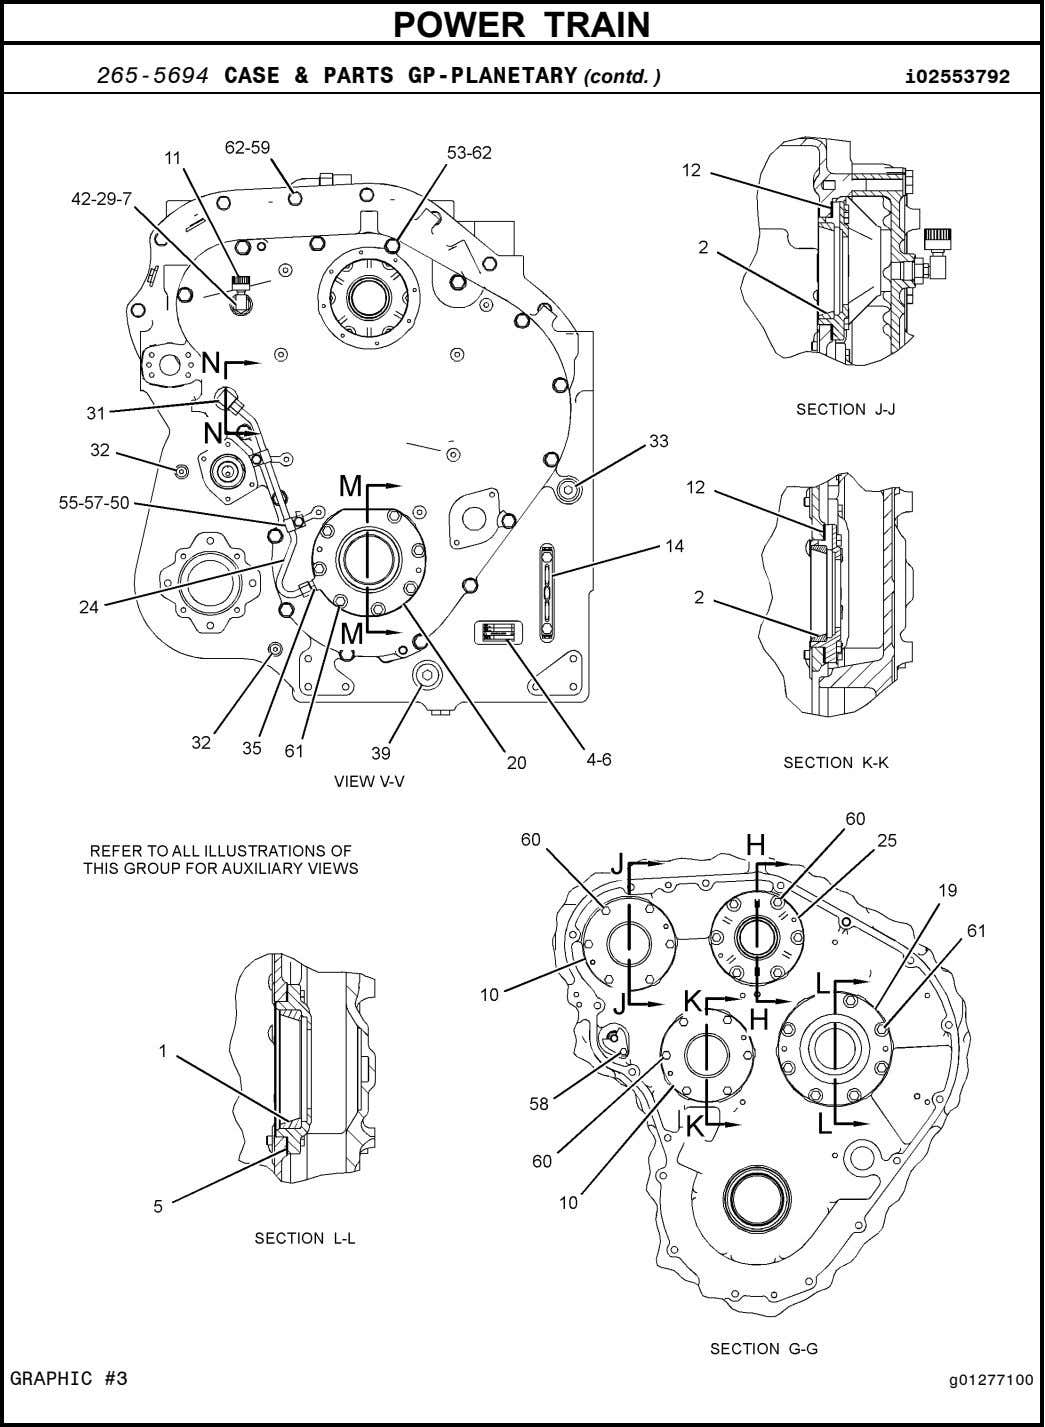 POWER TRAIN 265-5694 CASE & PARTS GP-PLANETARY (contd. ) i02553792 GRAPHIC #3 g01277100